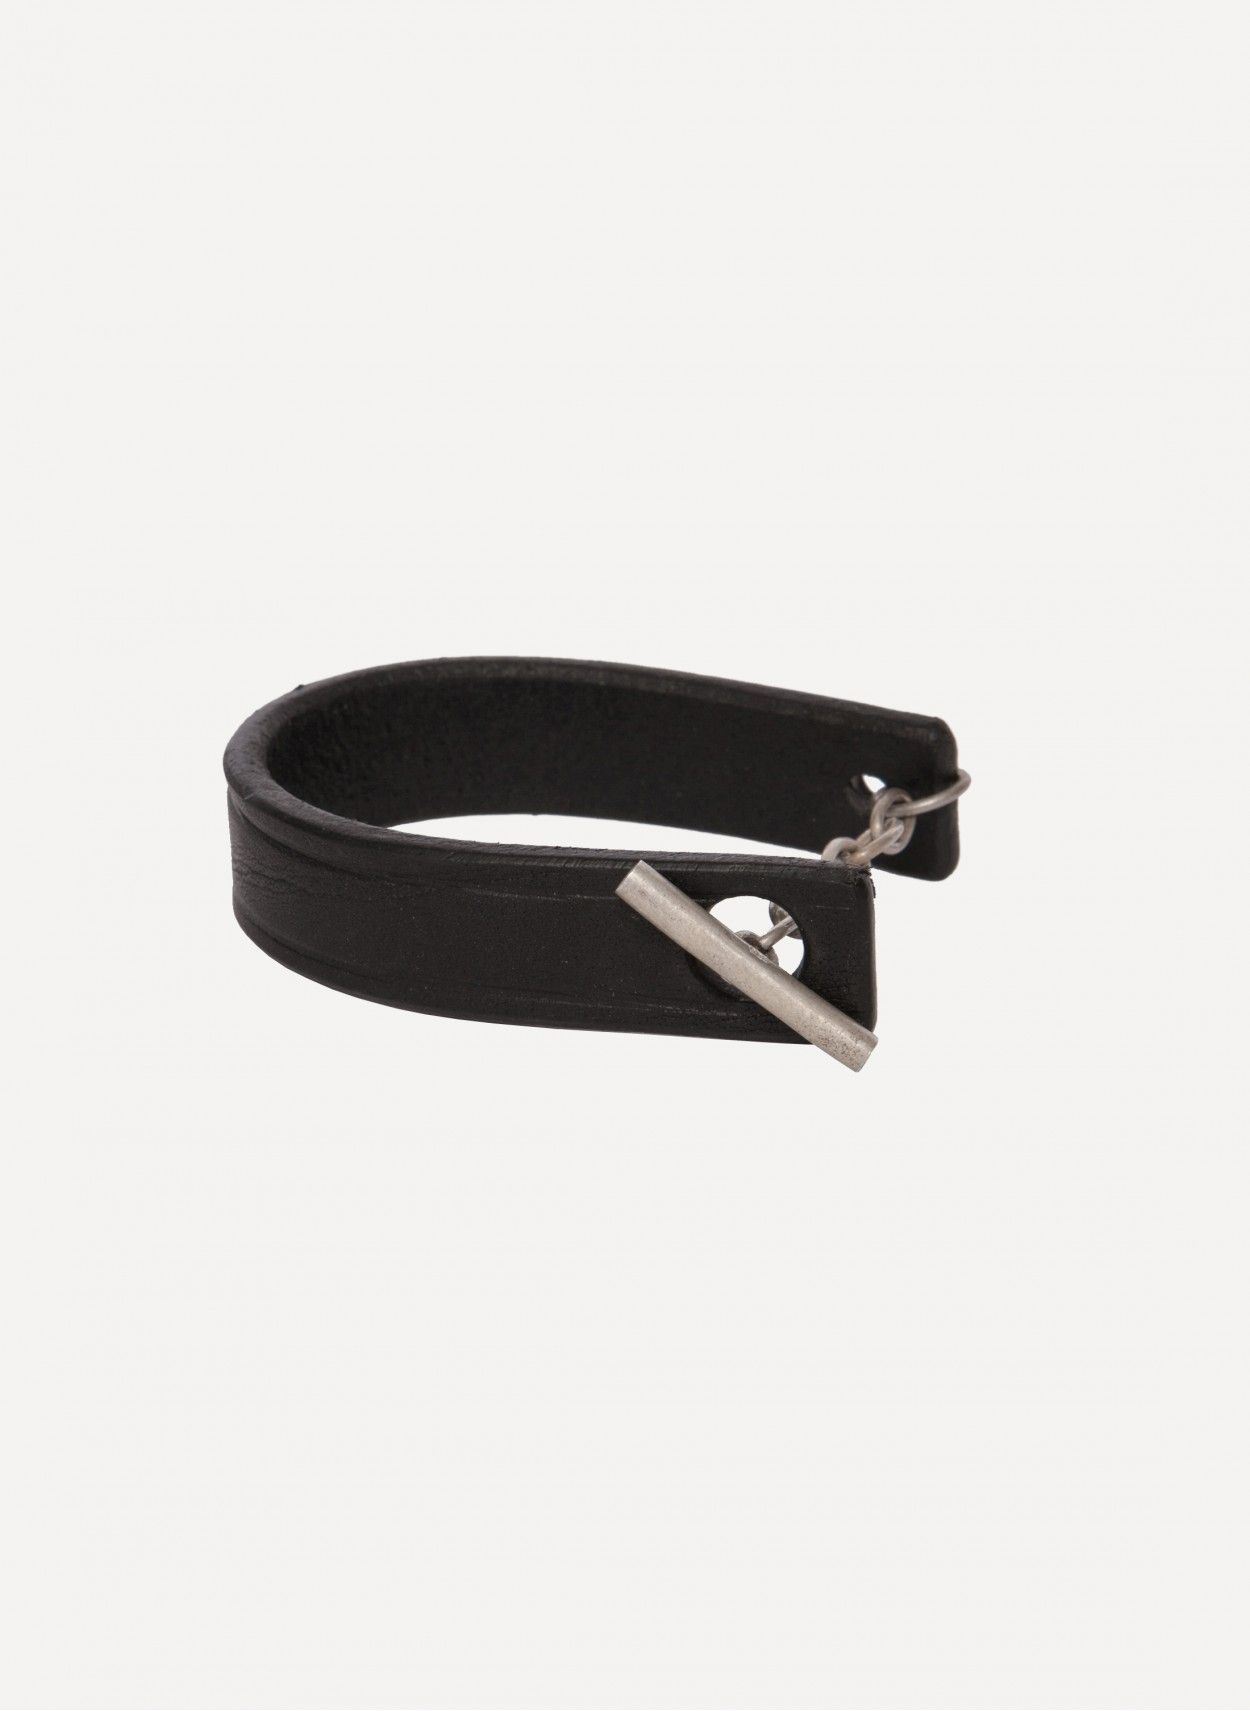 Parts Of Four leather band bracelet - Black